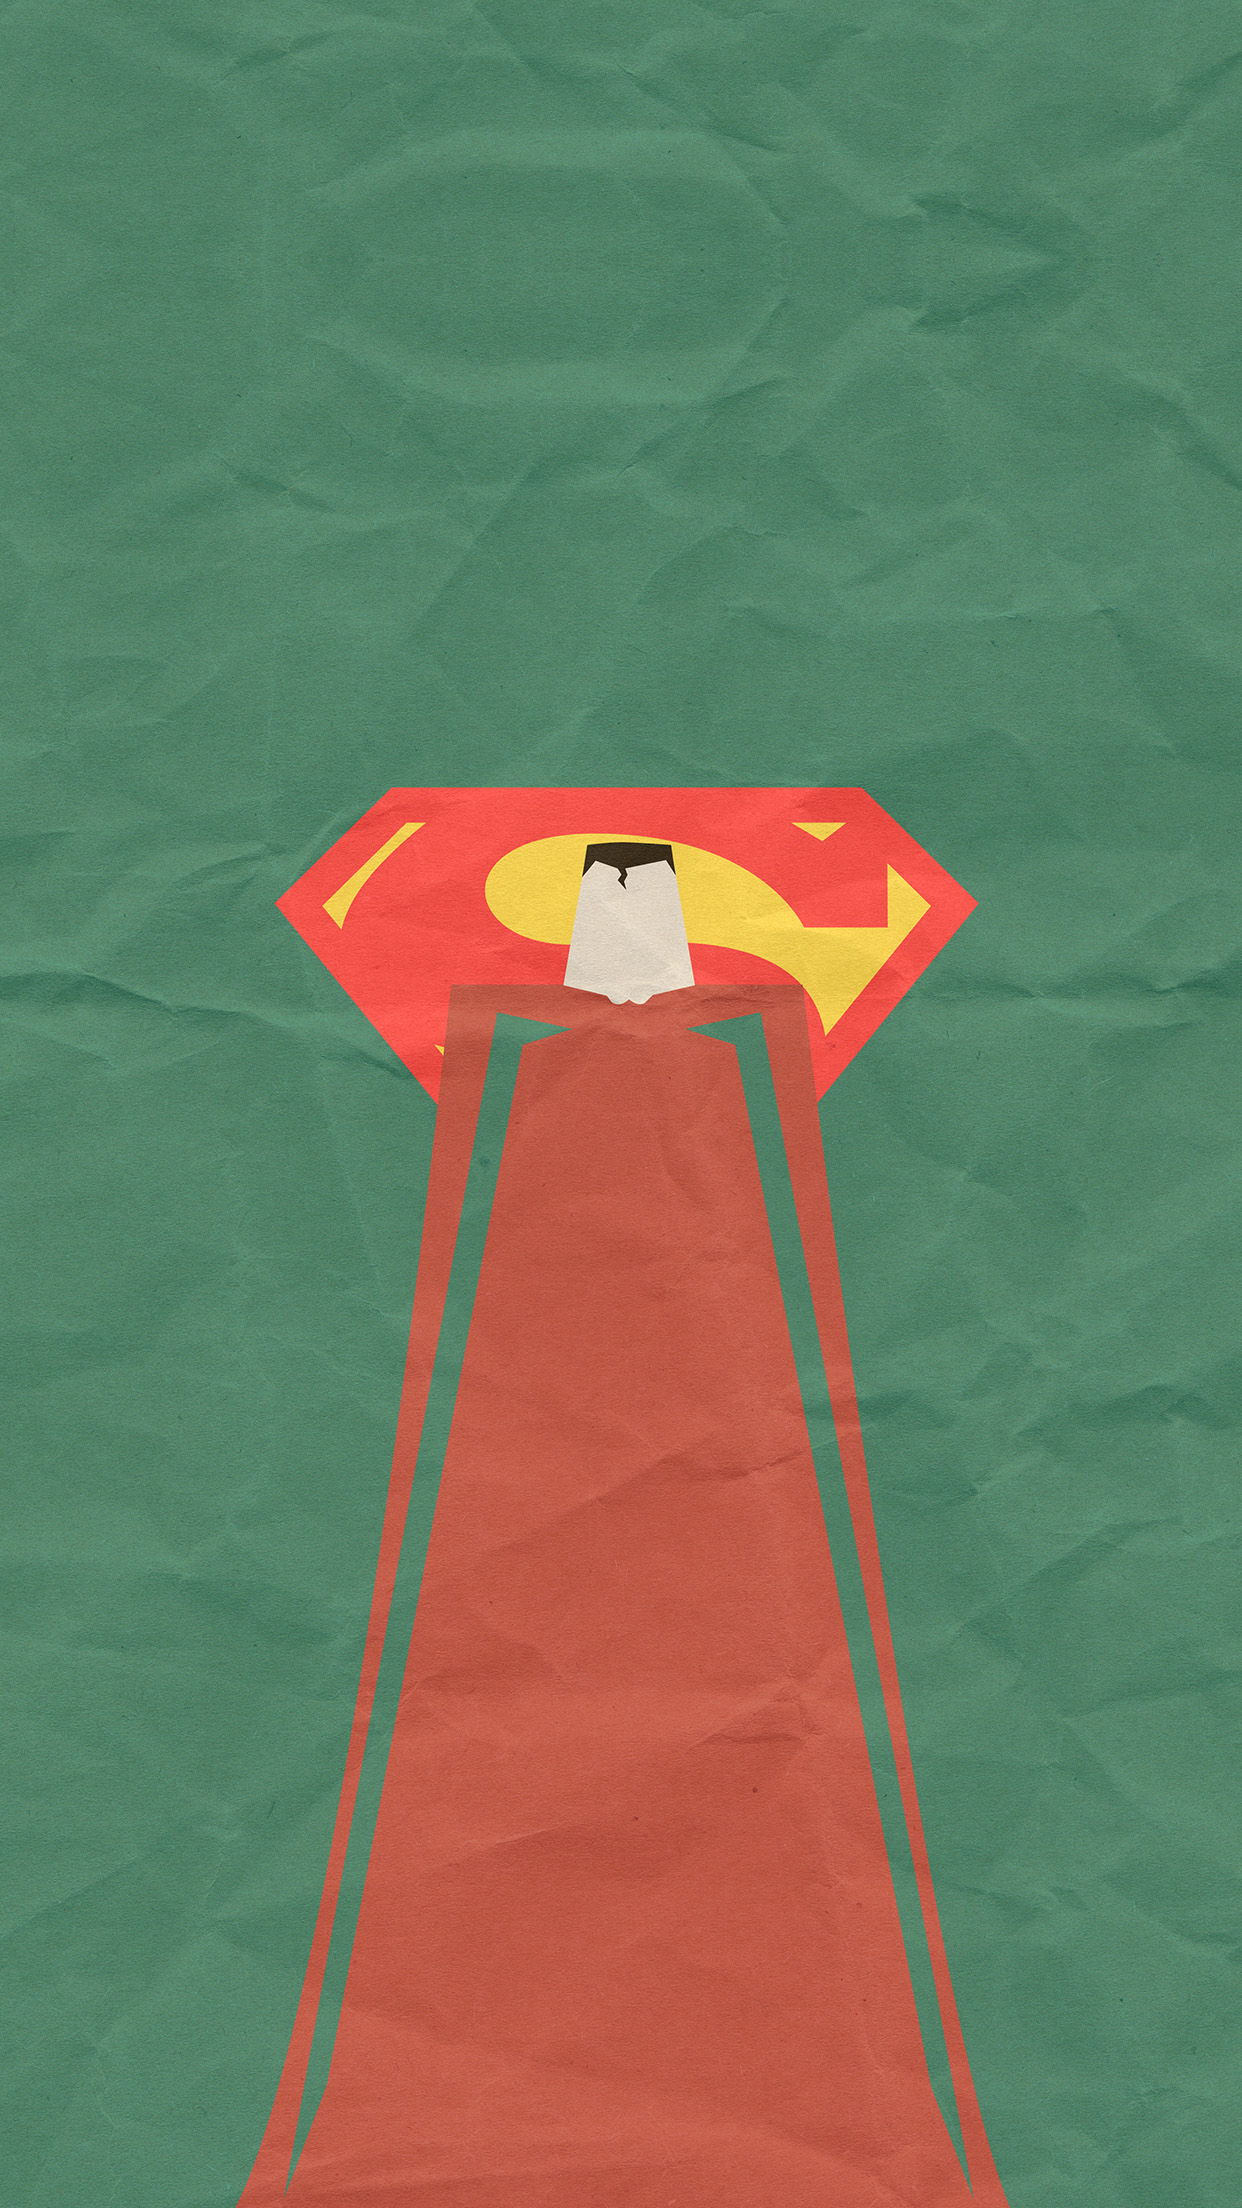 superman essays The first time we see superman in his red, blue and yellow uniform is nearly an hour into superman perhaps the filmmakers agreed with spielberg's famous statement that jaws would work better the longer he kept the shark off the screen that means the film doesn't open like most superhero movies or james bonds with a sensational pre-title sequence.